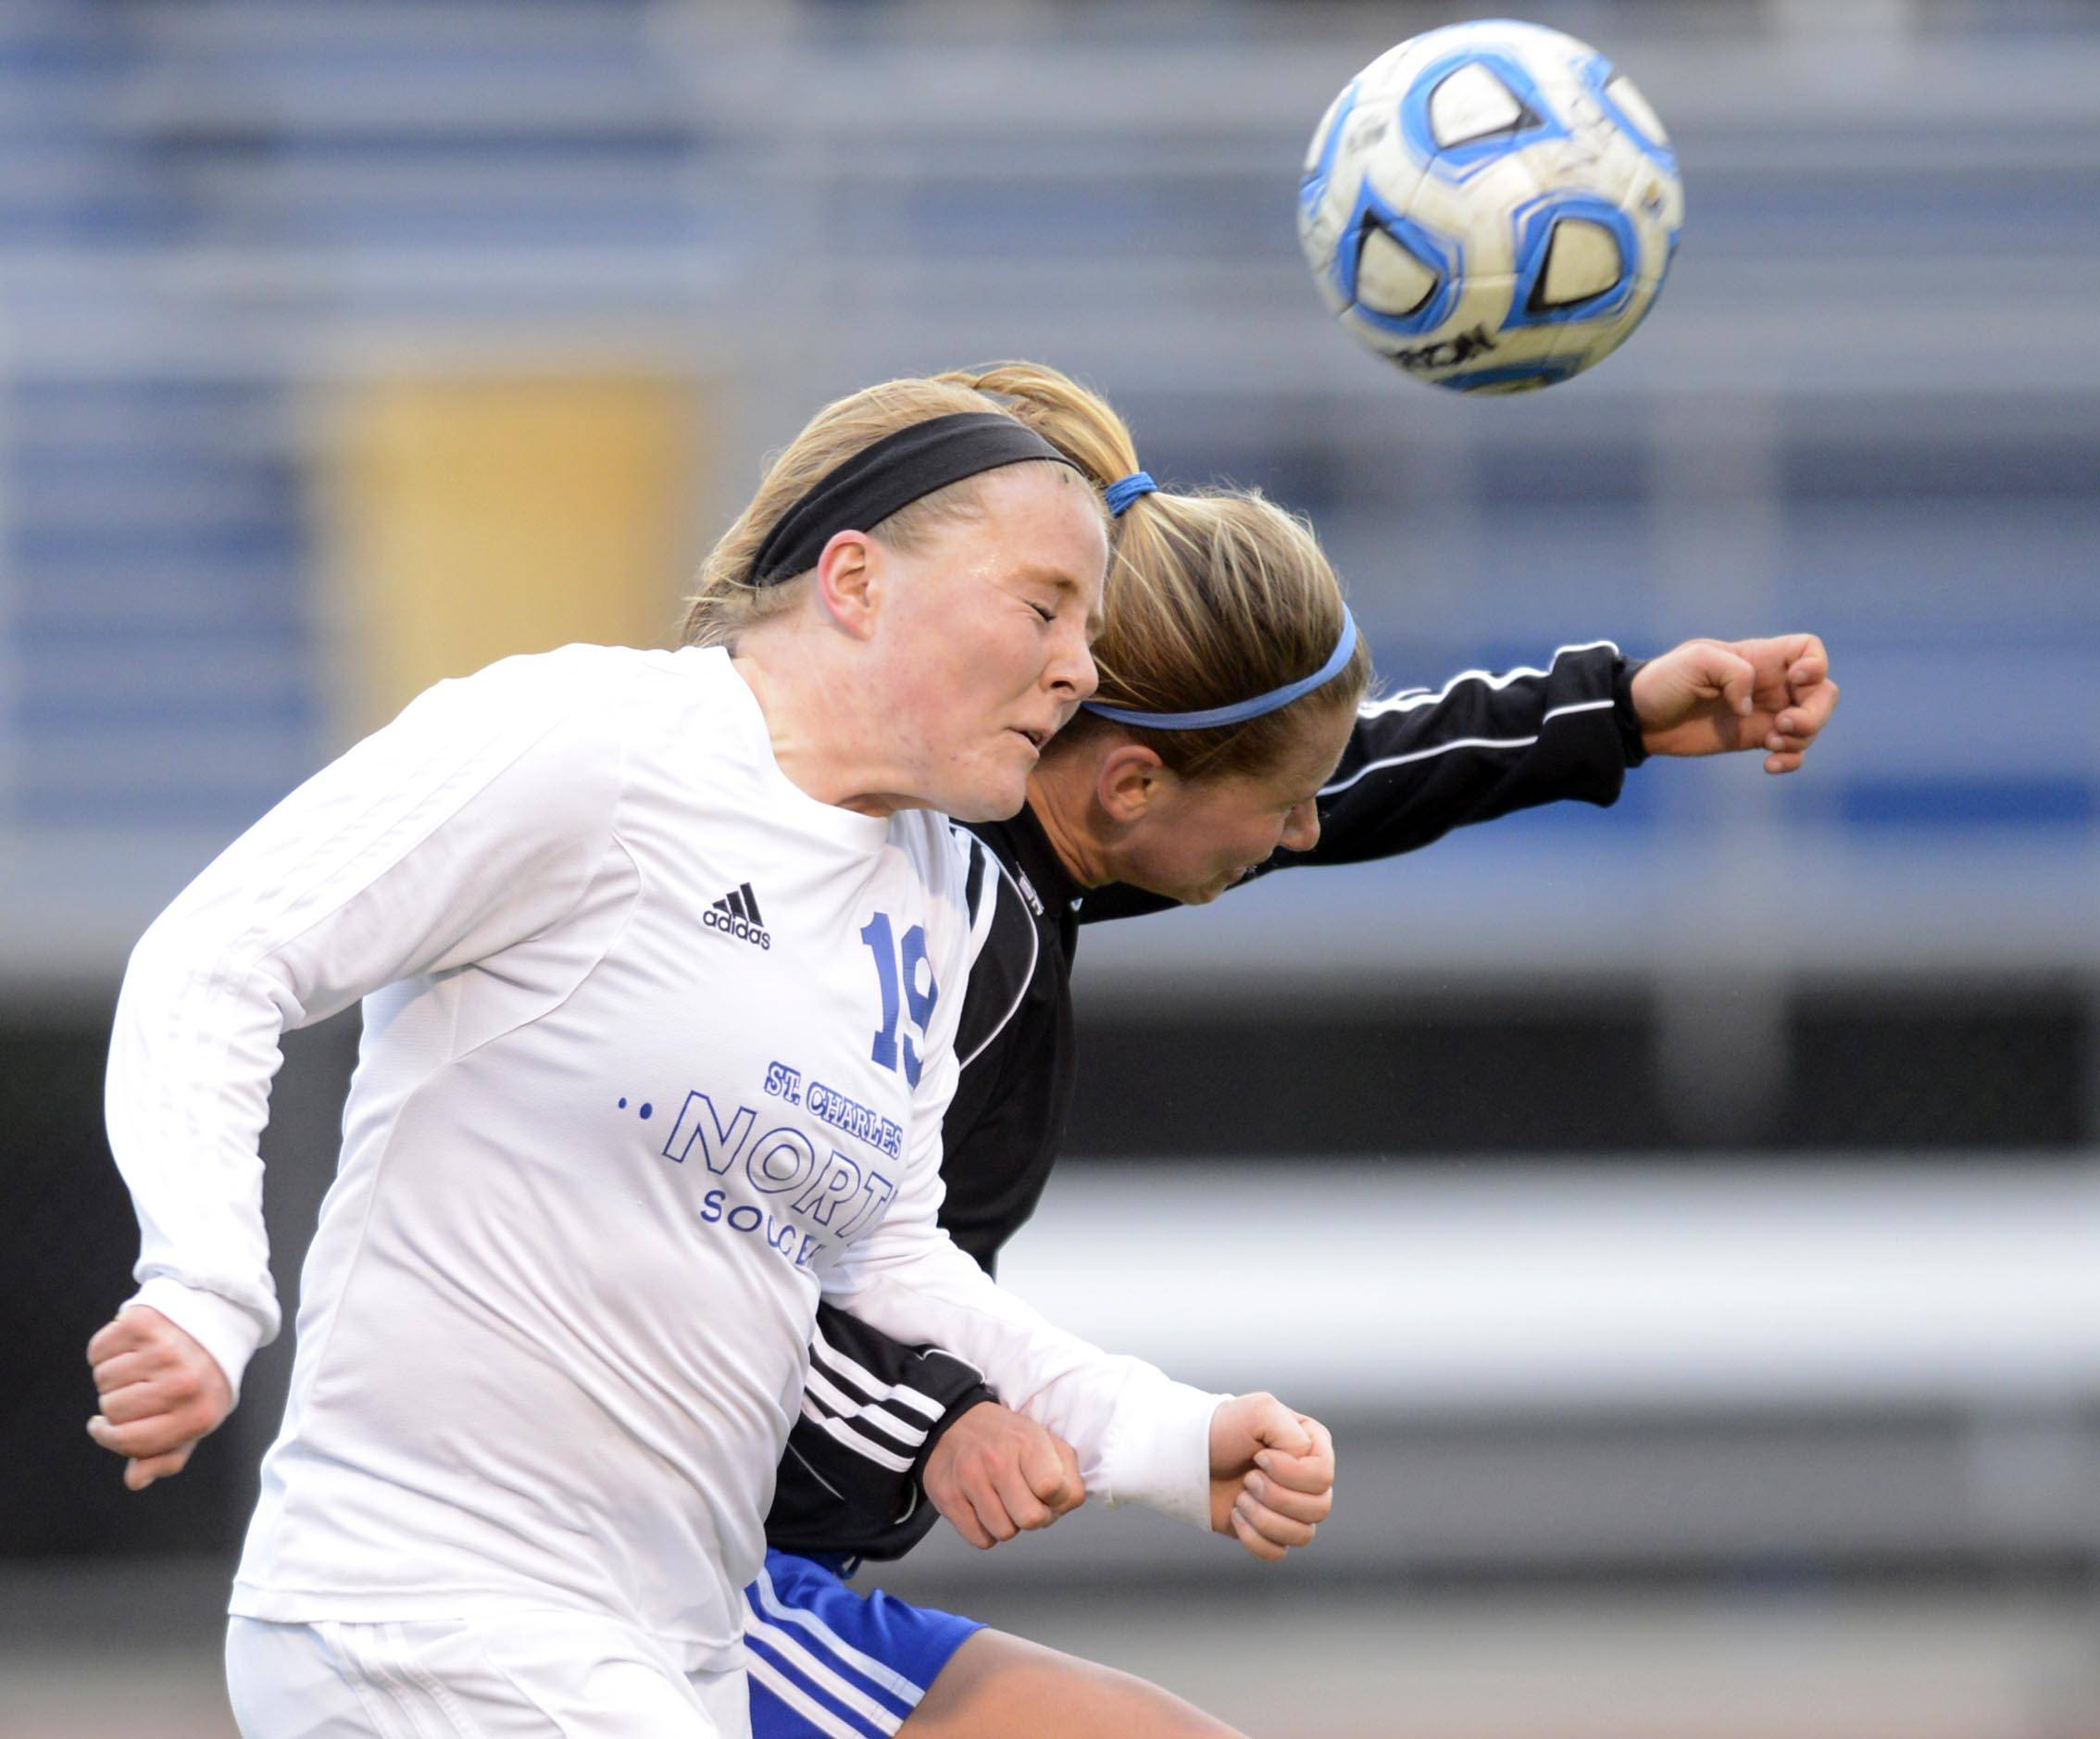 St. Charles North's Megan O'Leary and Geneva's Mary Landry race for a header Wednesday in St. Charles.